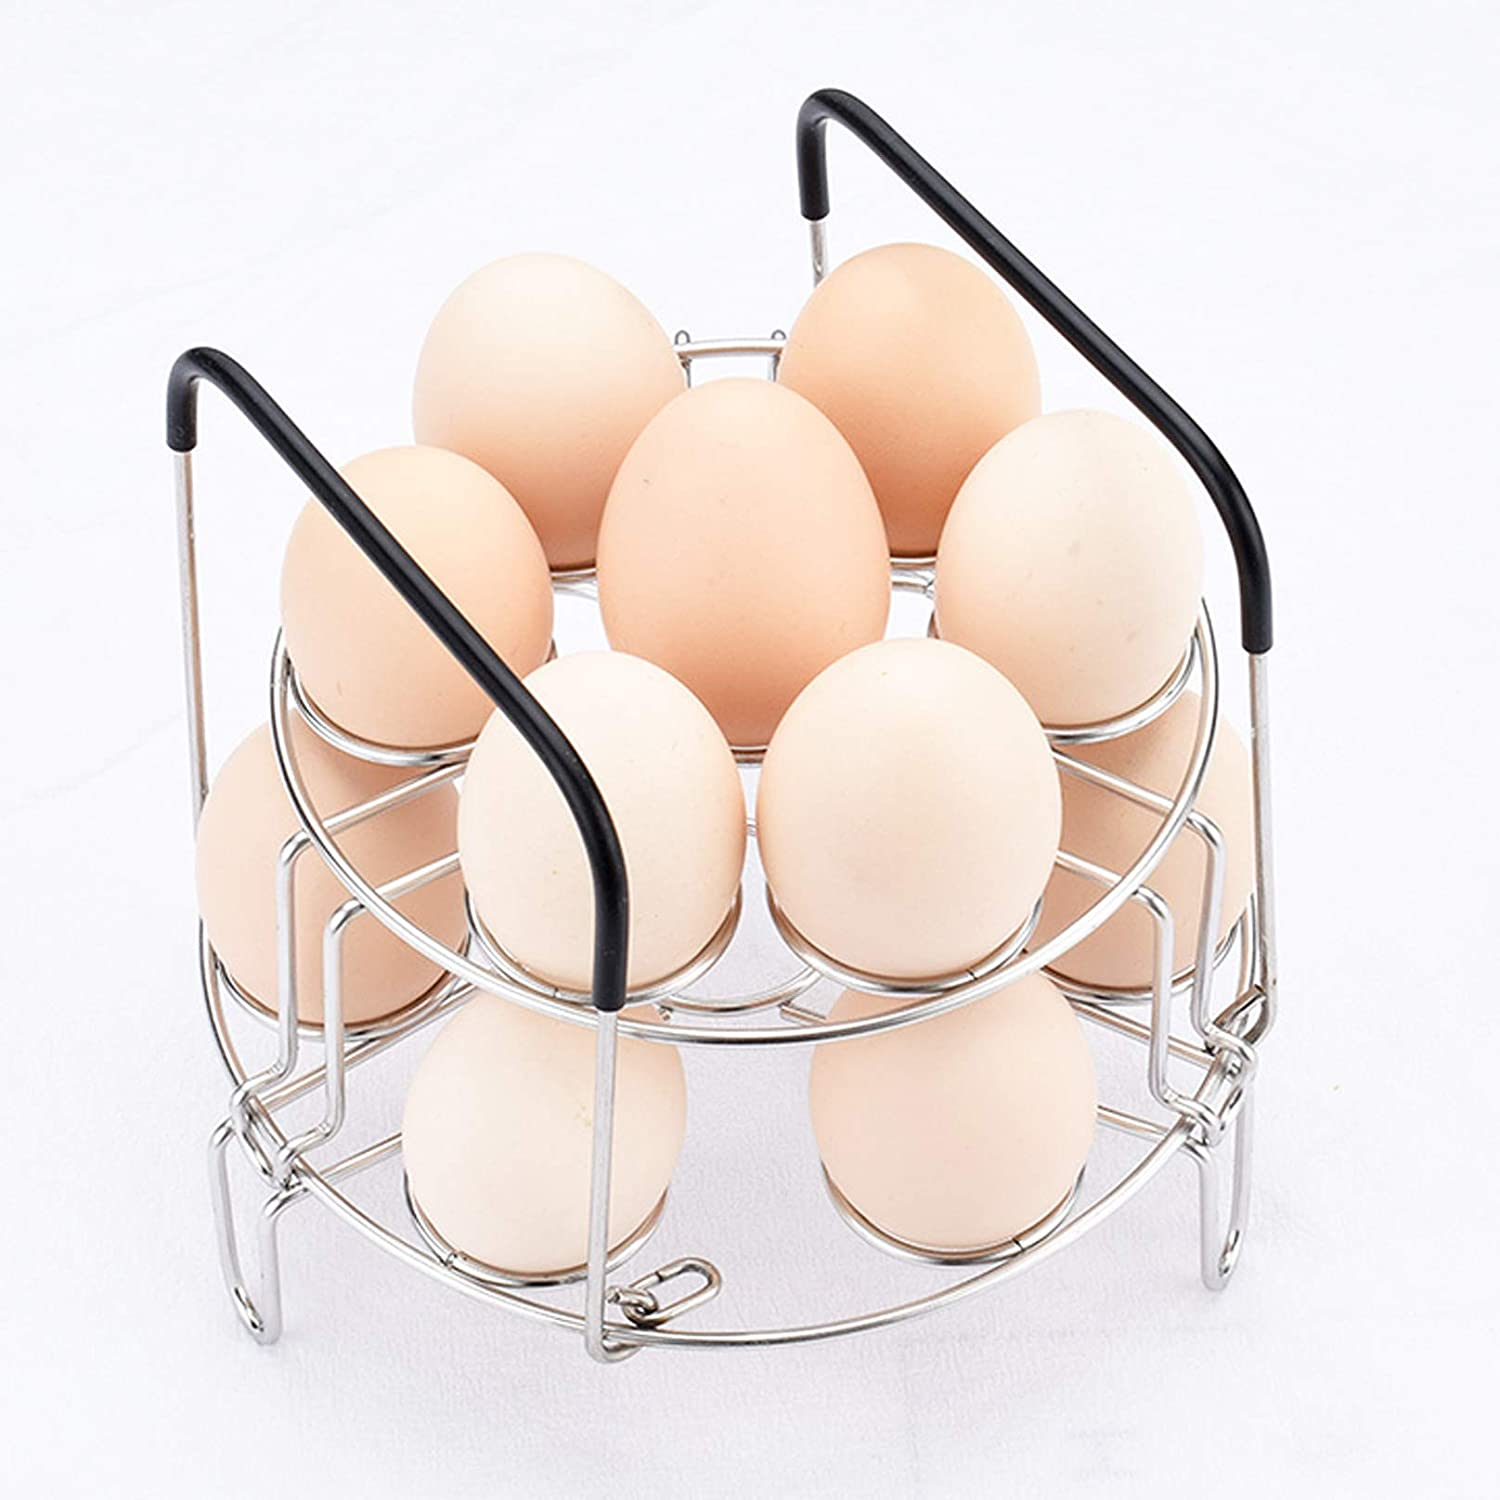 FANGULU 1PCS Portable Stainless Steel Egg Rack Silicone Handles Steamer Egg Cooking Rack 14 Egg Support Hole Positions Compatible for 6 and 8 Quart Instant Pot